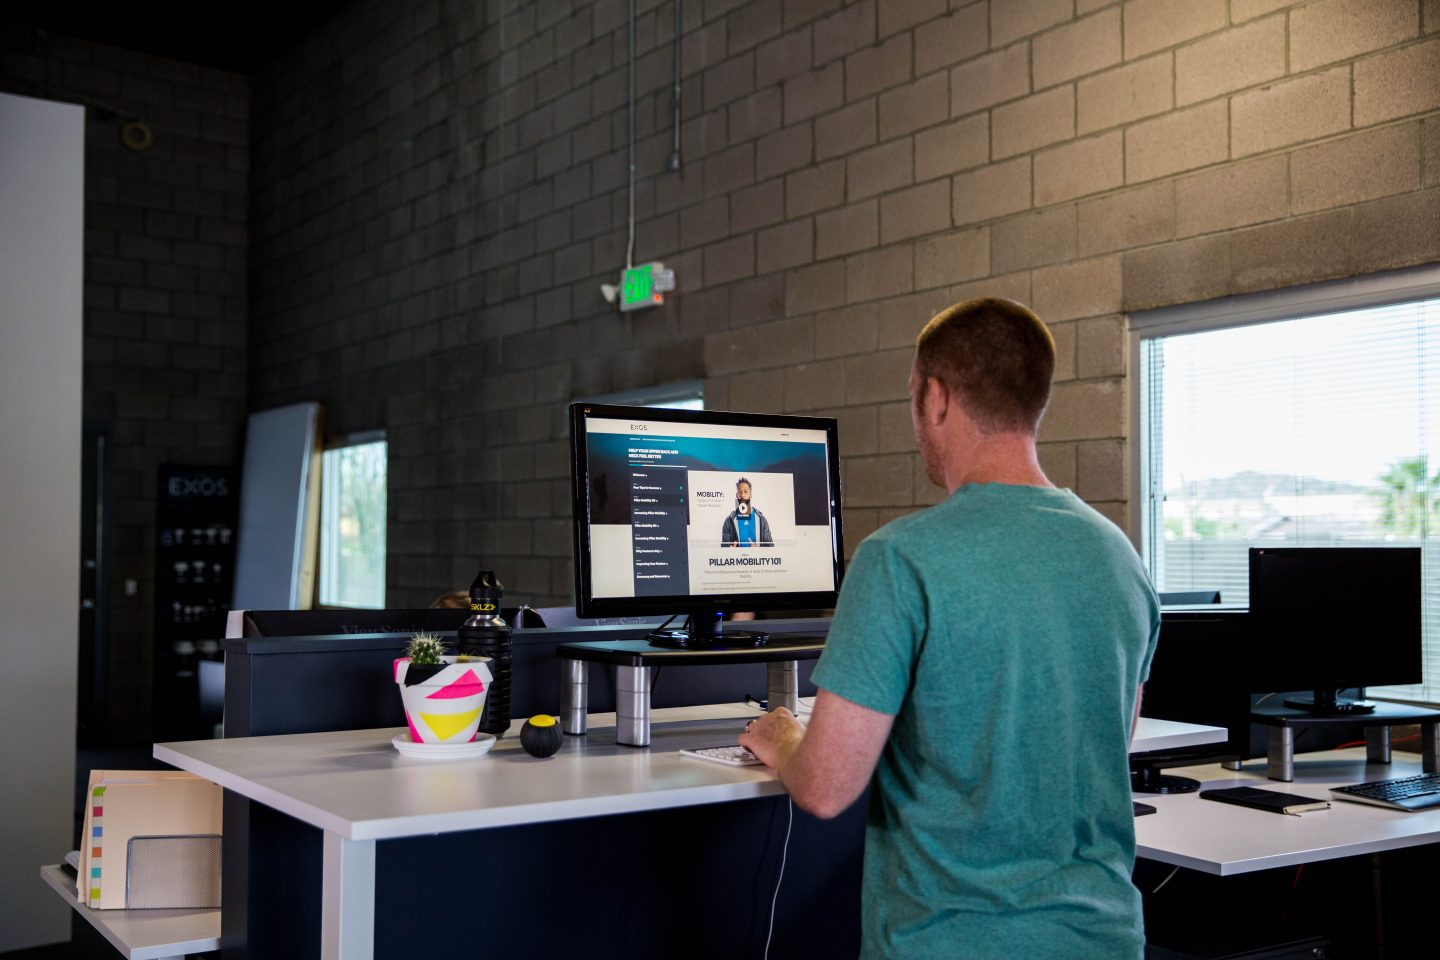 A man standing at a desk in a healthy position wearing t-shirt. standing desk, health, healthy work place, work space, mental health, productivity, EXOS, GamePlan A